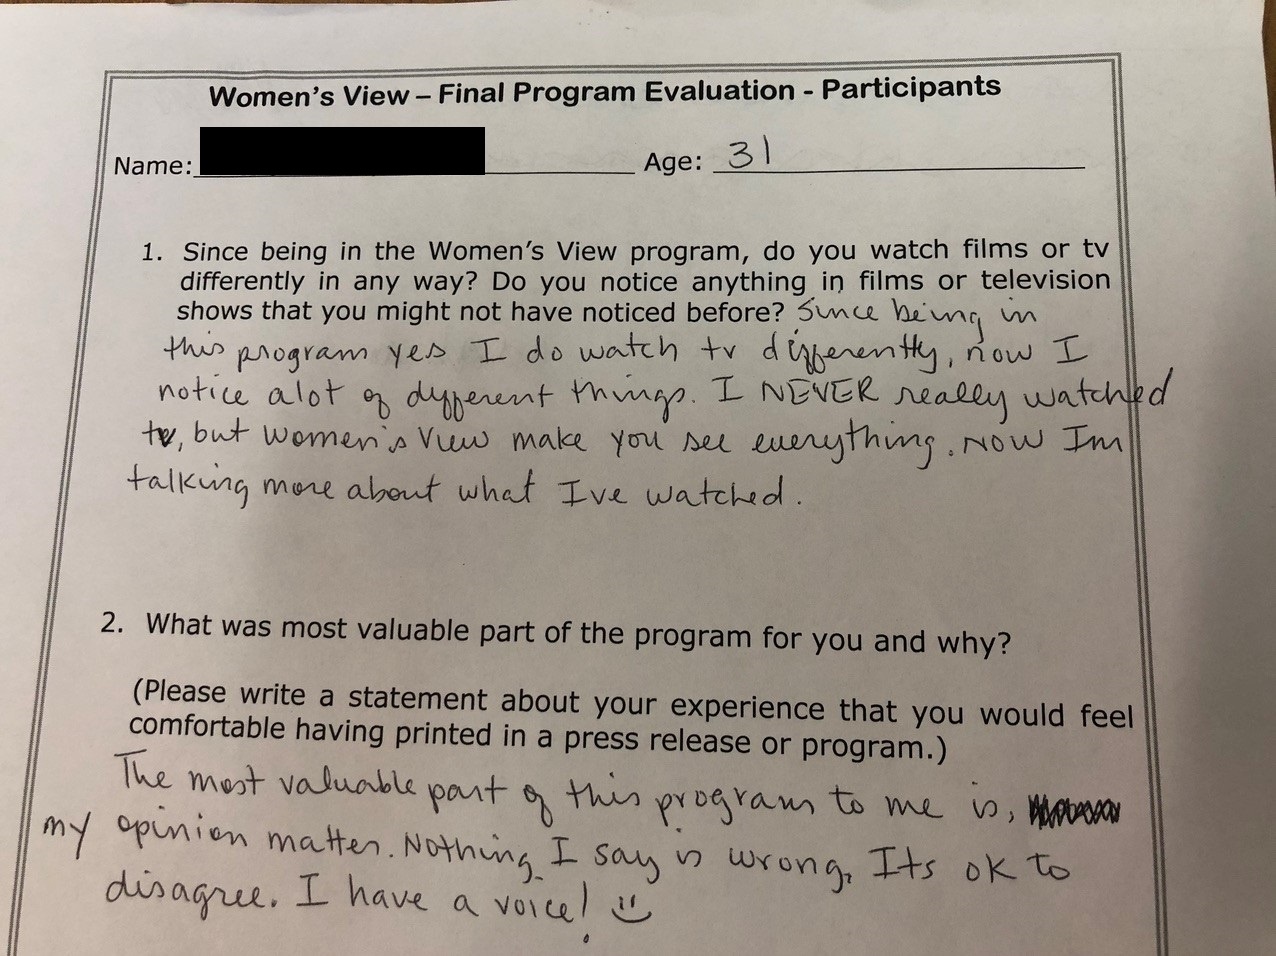 Portions of a Final Program Evaluation for the Women's View program.